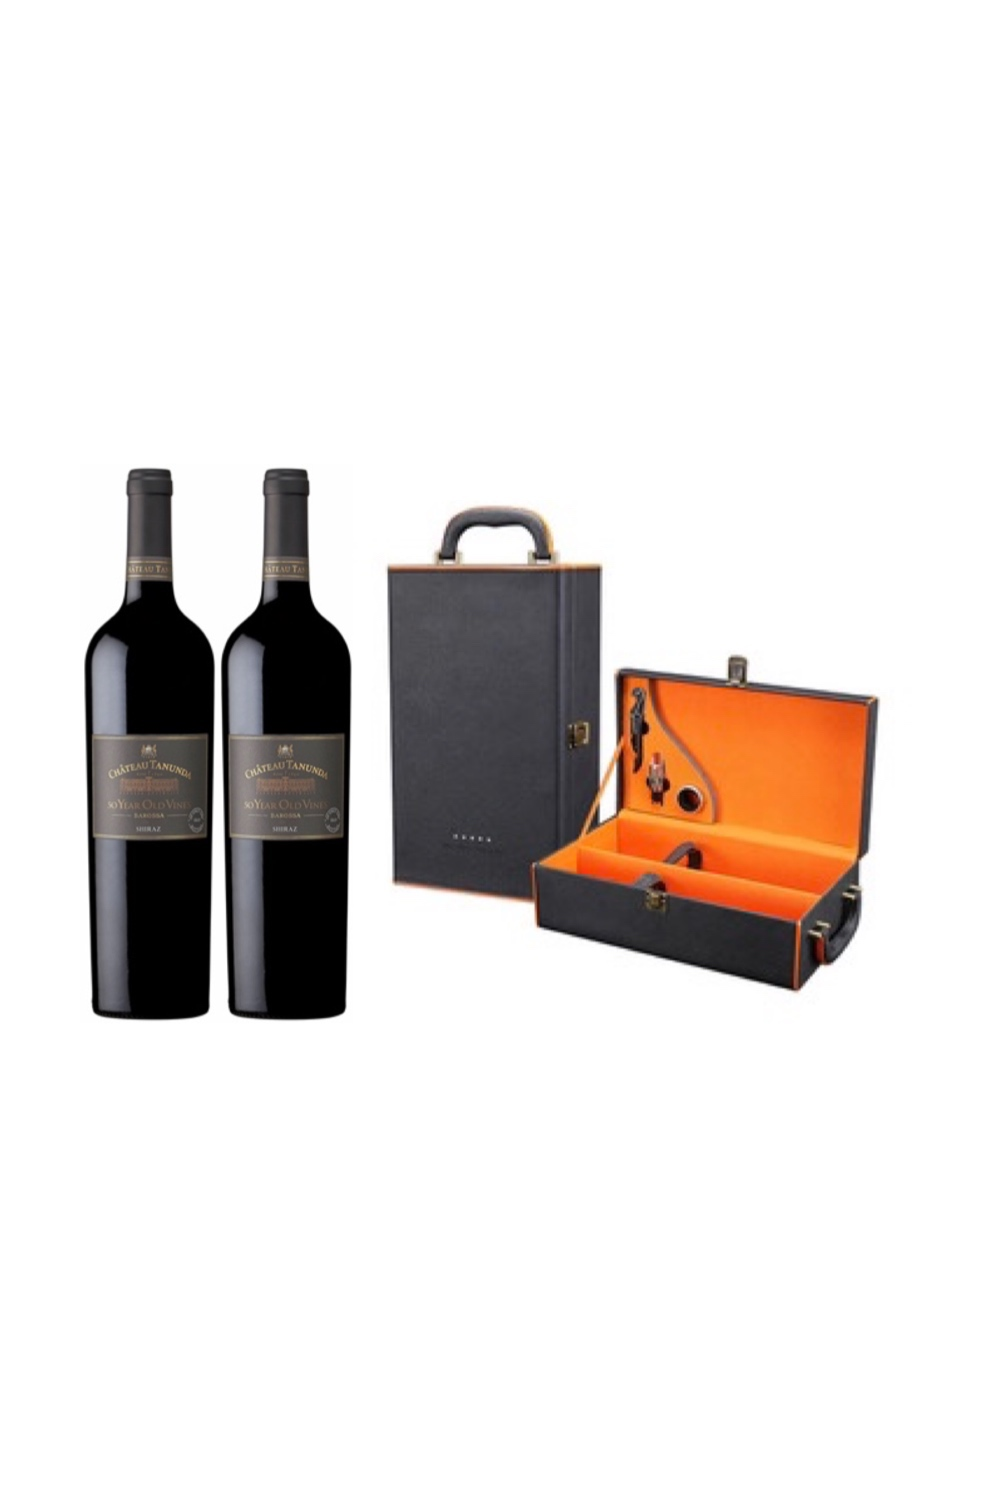 1 Month Aussie/New Zealand/South-Africa Indulgence Wine Gift Subscription